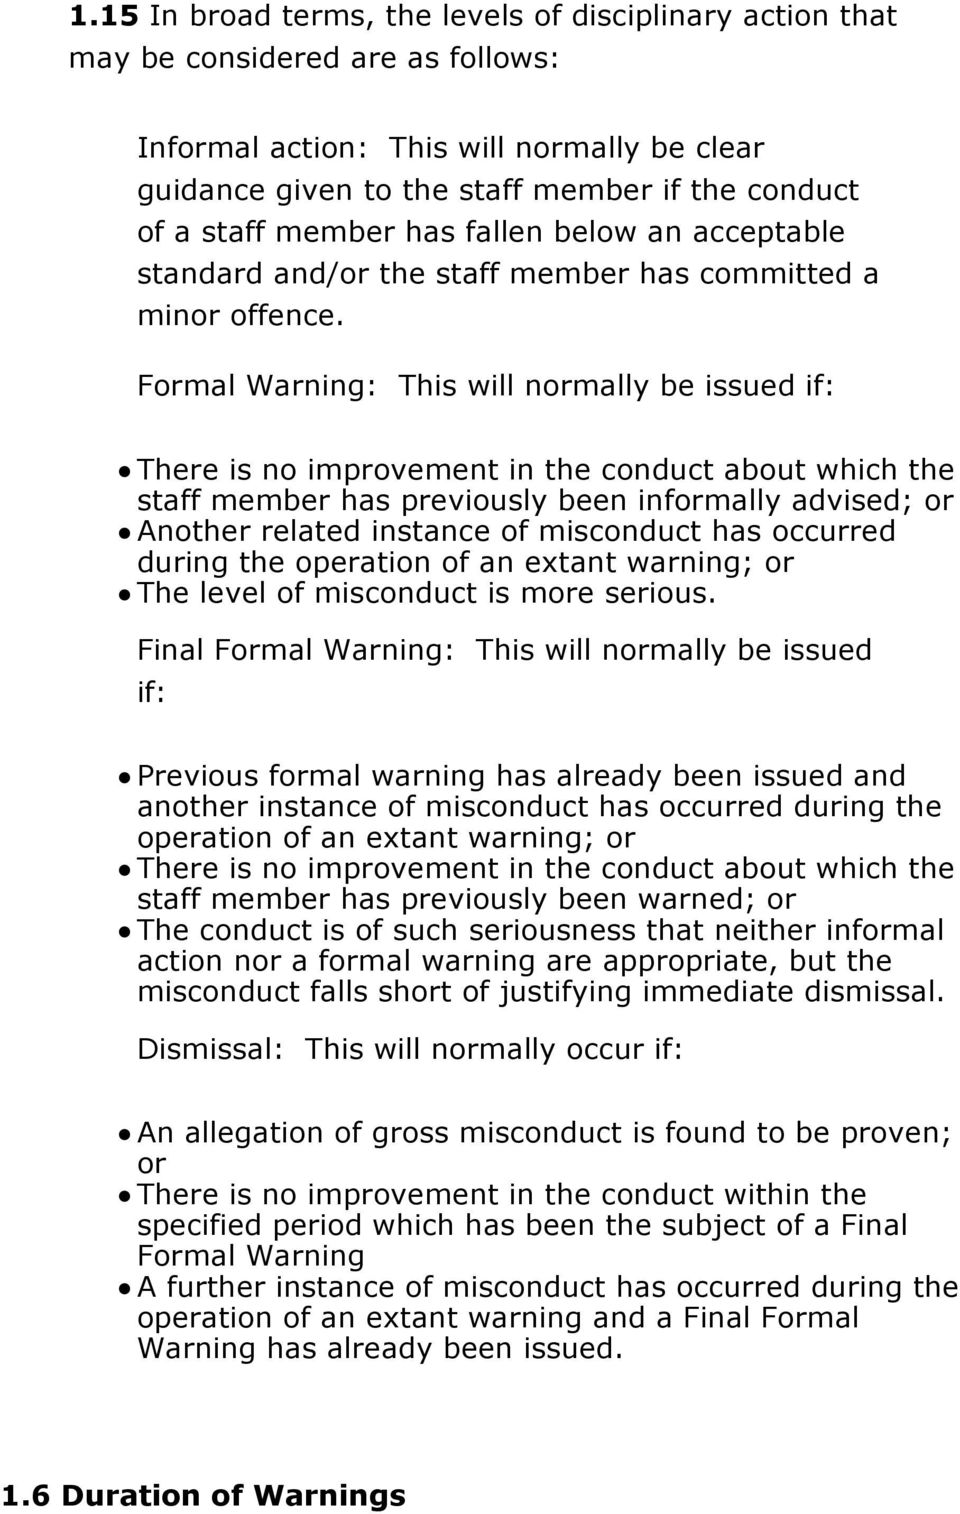 Formal Warning: This will normally be issued if: There is no improvement in the conduct about which the staff member has previously been informally advised; or Another related instance of misconduct